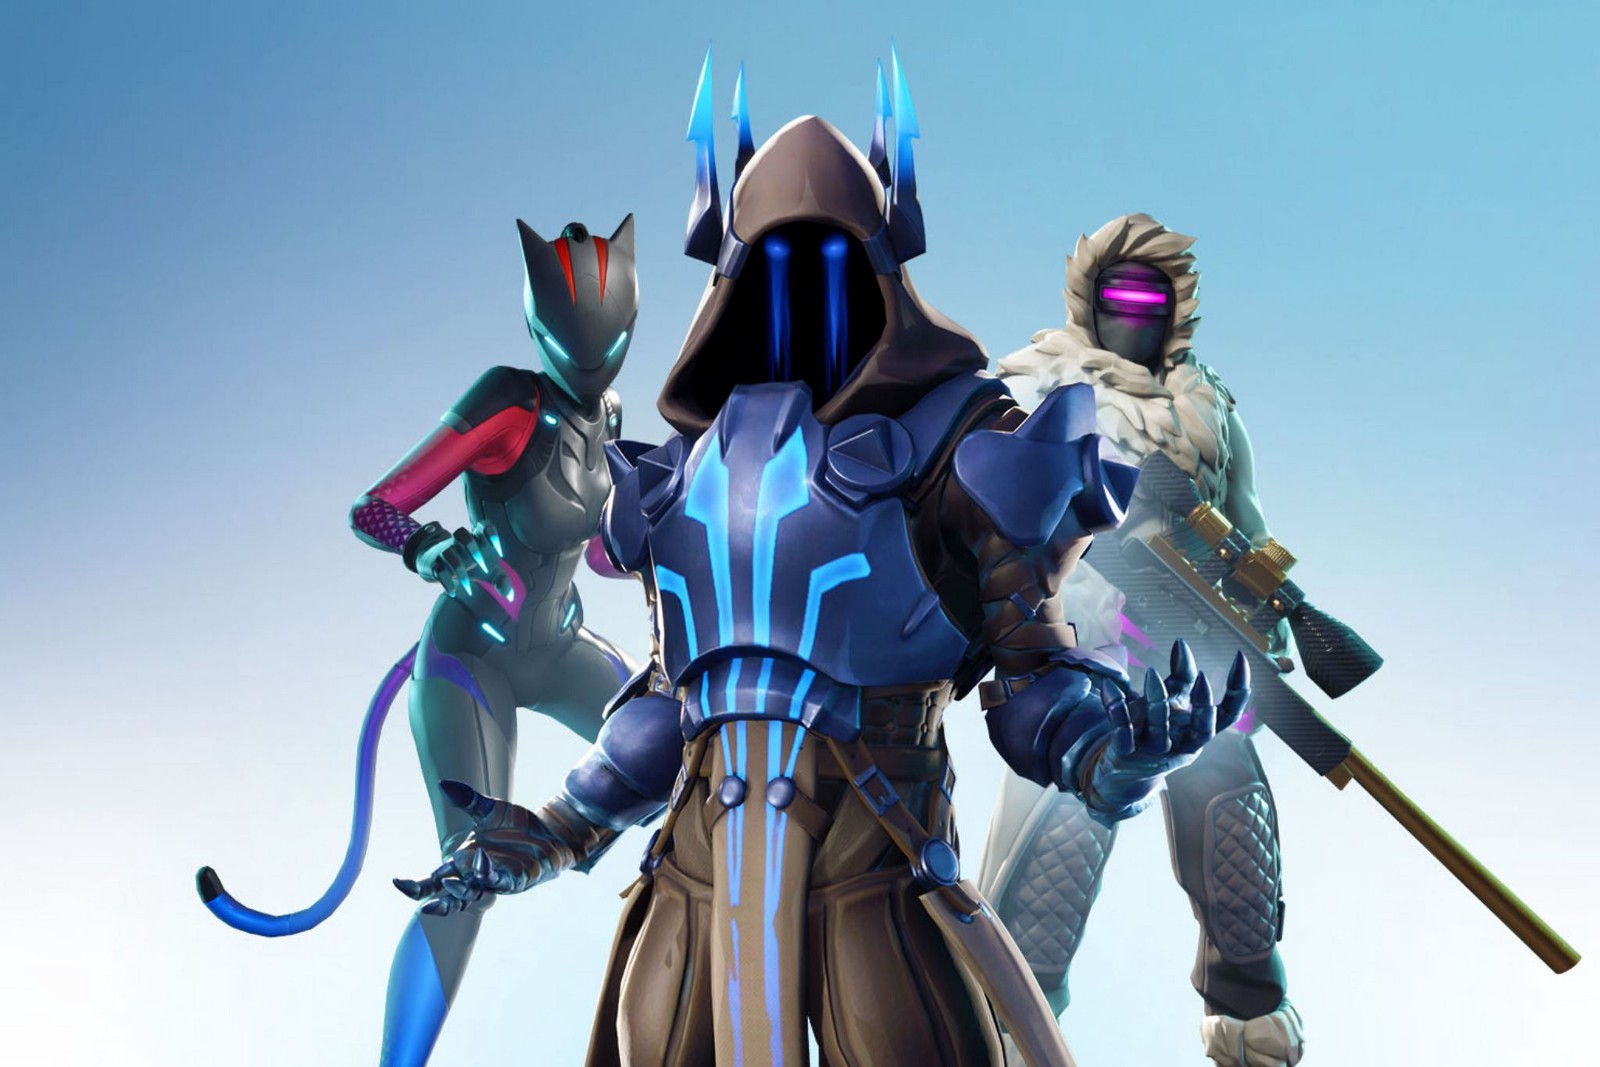 with over 200m users 2bn in revenue here s why fortnite may be the ultimate growth marketing - fortnite monthly players 2018